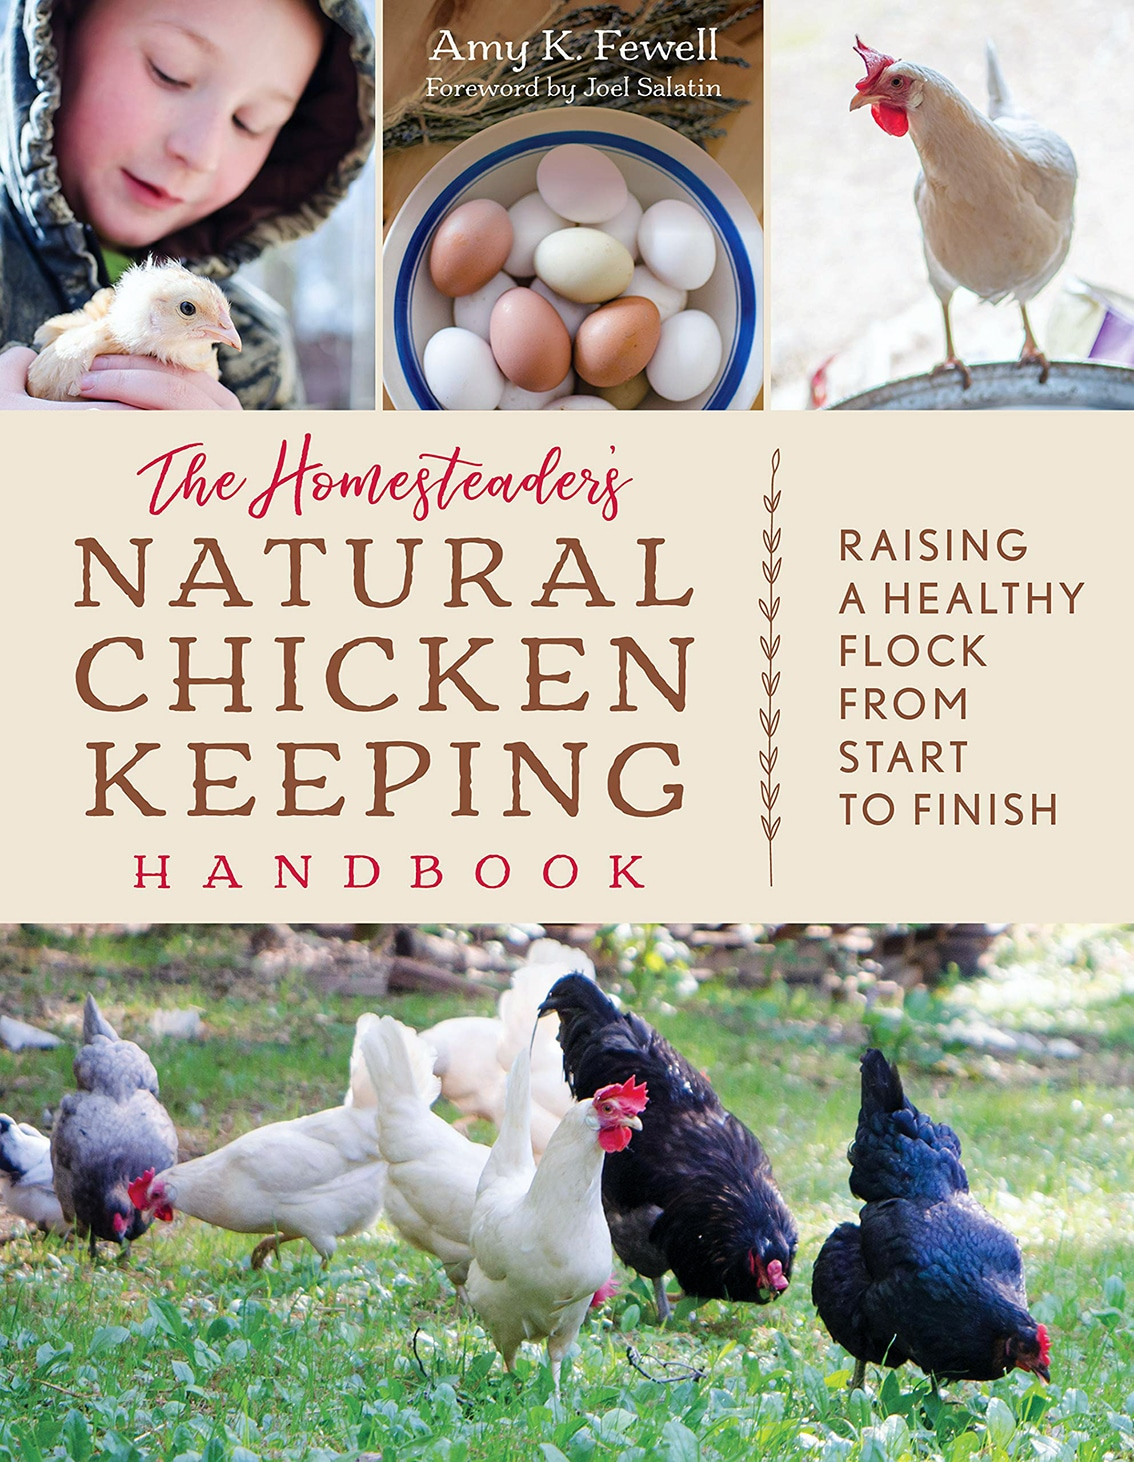 Books on chickens for kids